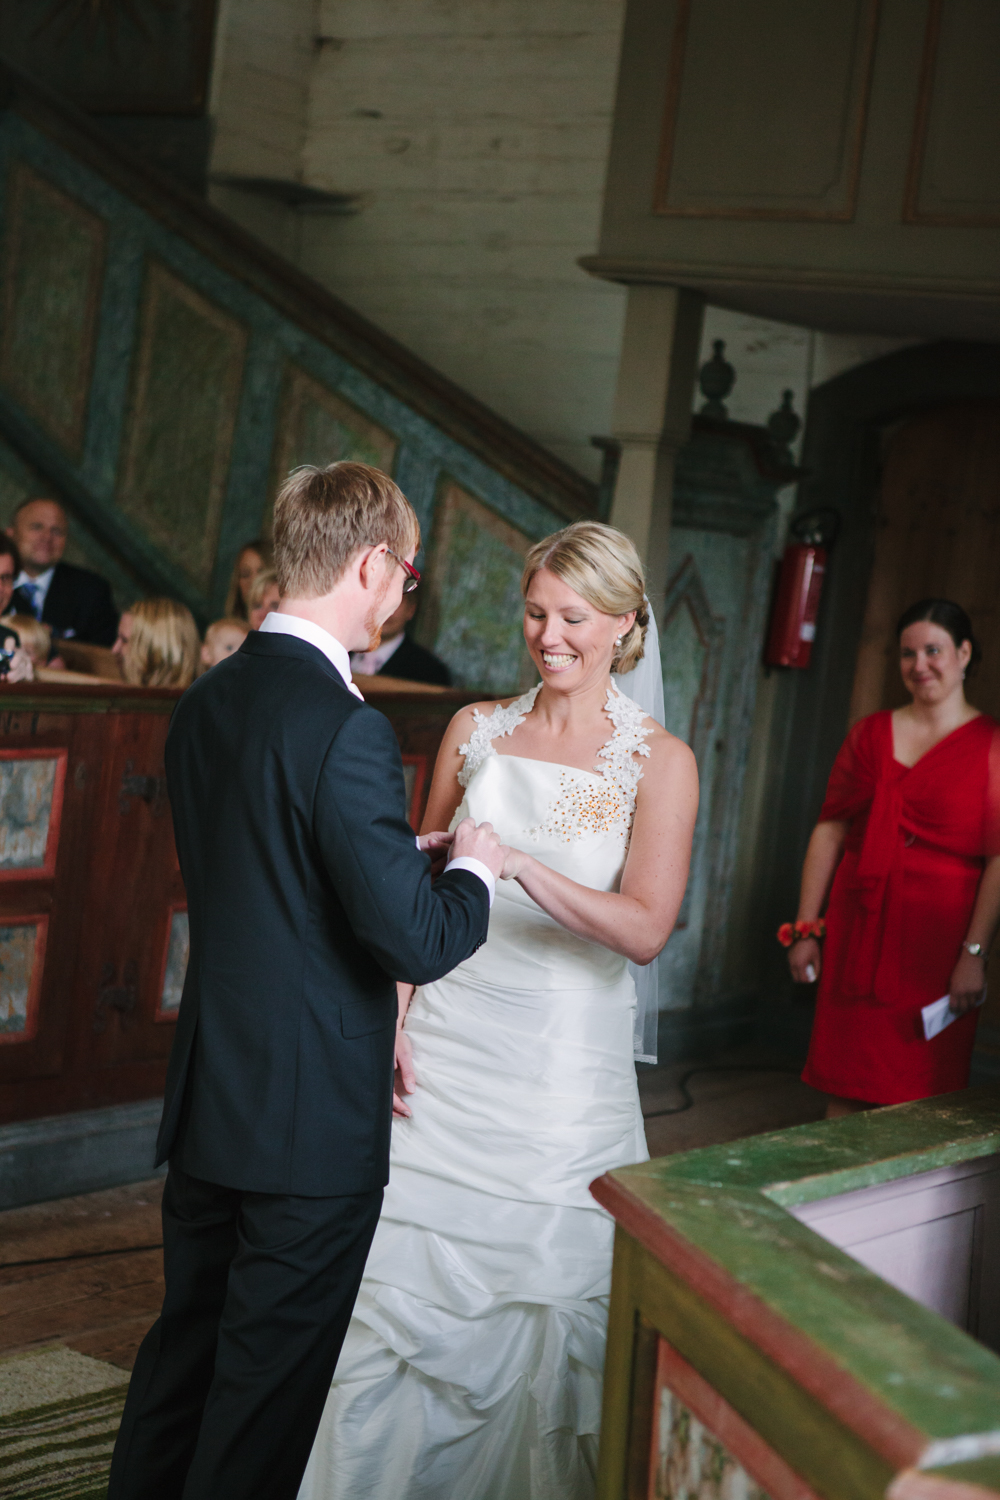 wedding_stina_johan-70.jpg